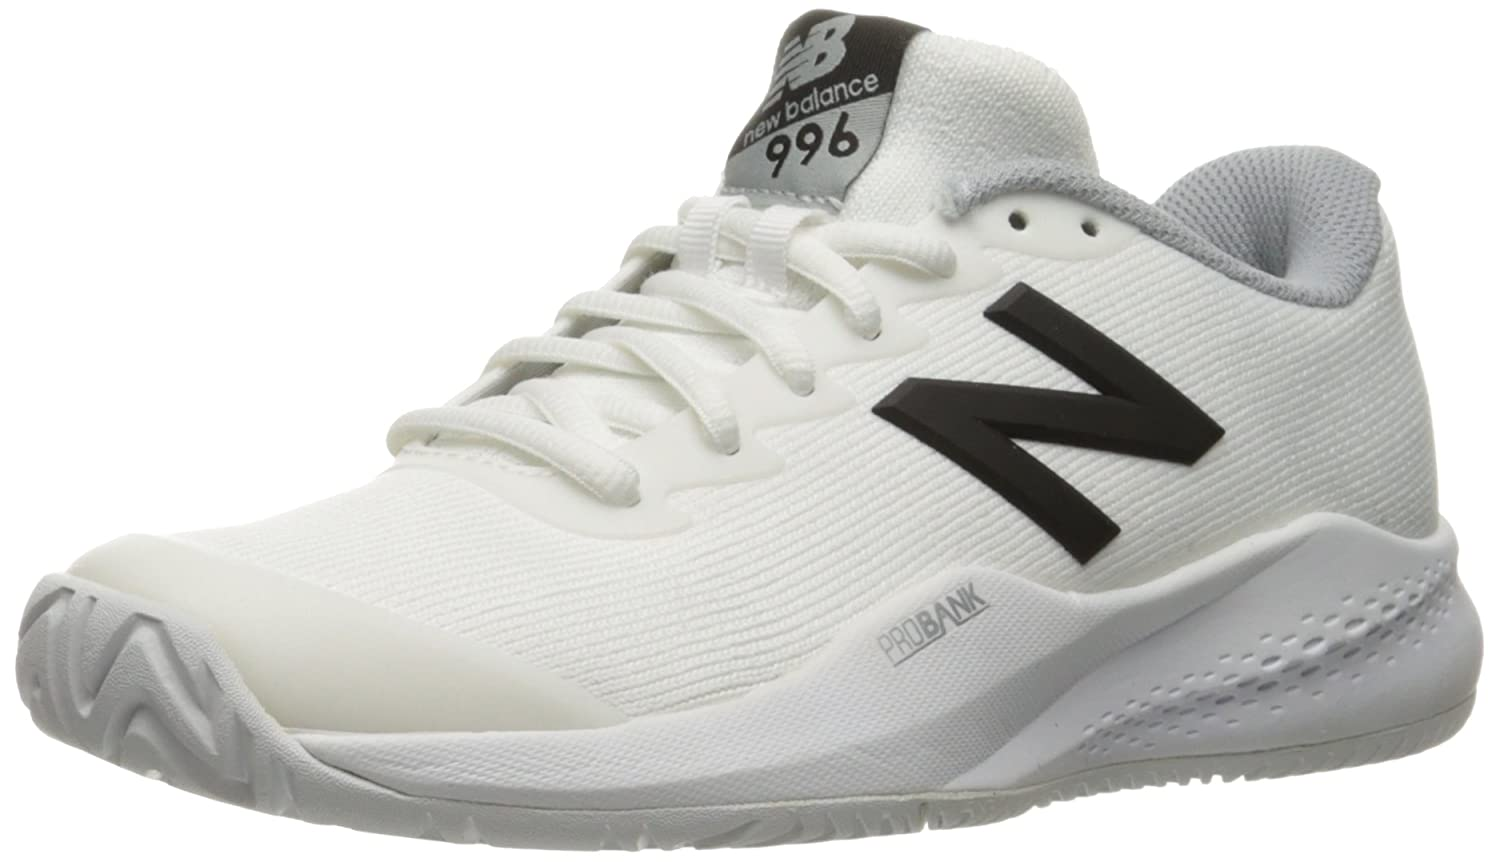 New Balance Women's 996v3 Hard Court Tennis Shoe B01FSIKOGI 8 D US|White/Black